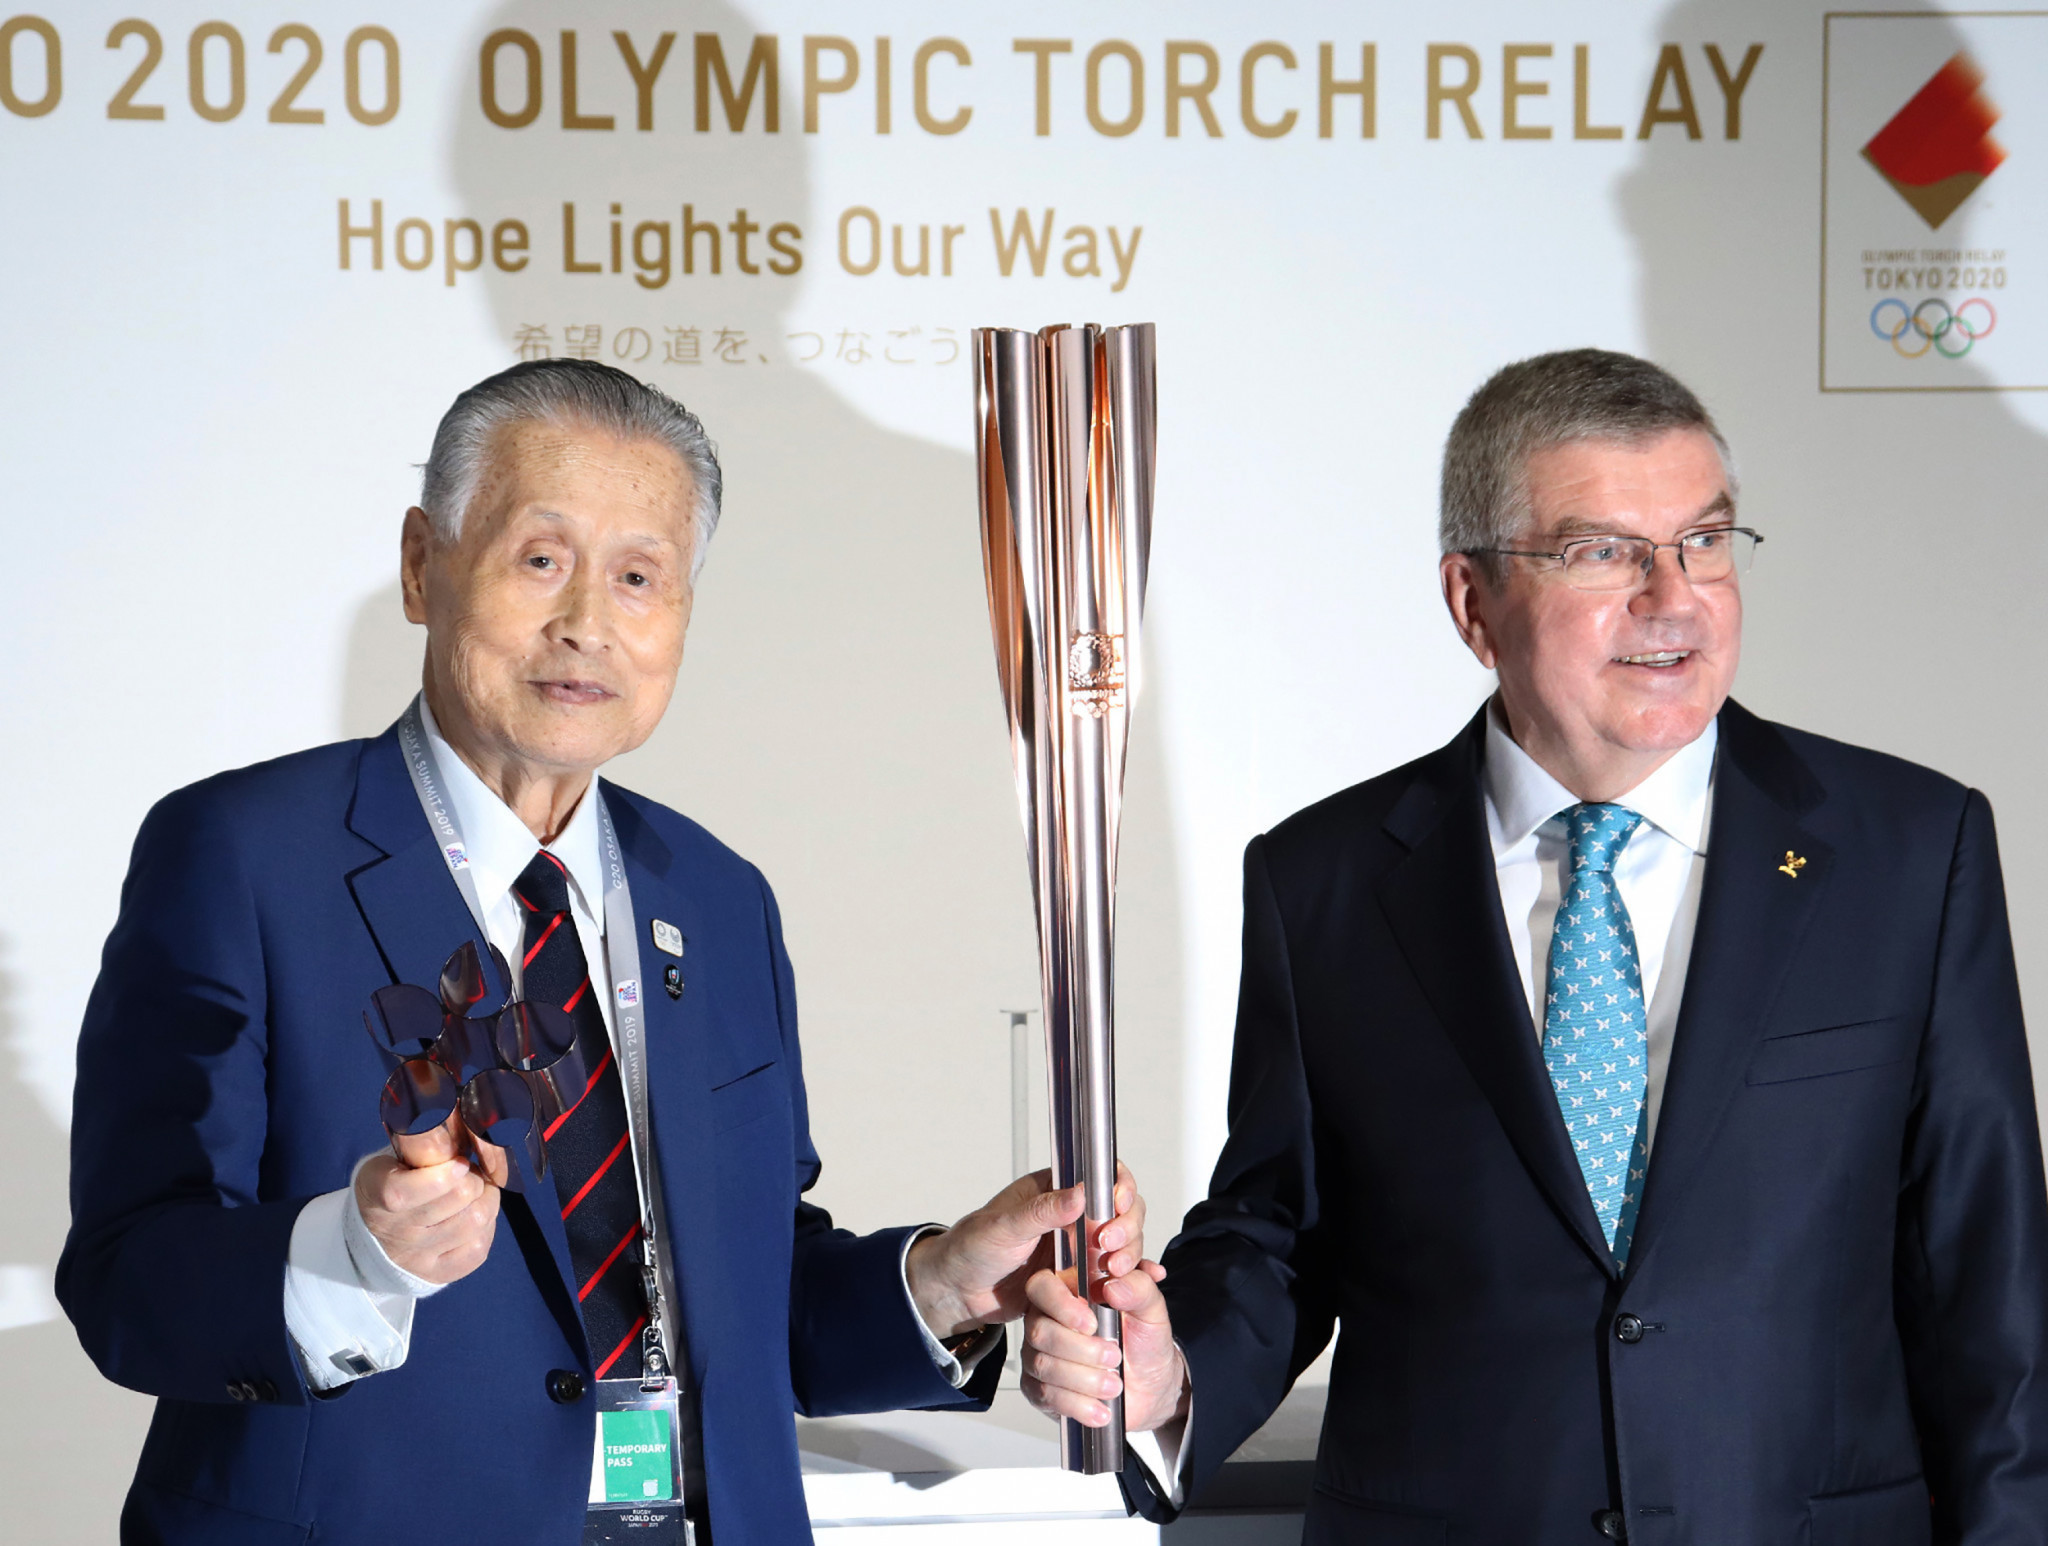 International Olympic Committee President Thomas Bach, right, and Tokyo 2020 President Yoshiro Mori pose while holding the Tokyo 2020 Torch at the Olympic promotion booth at the G20 Summit in Osaka ©Getty Images